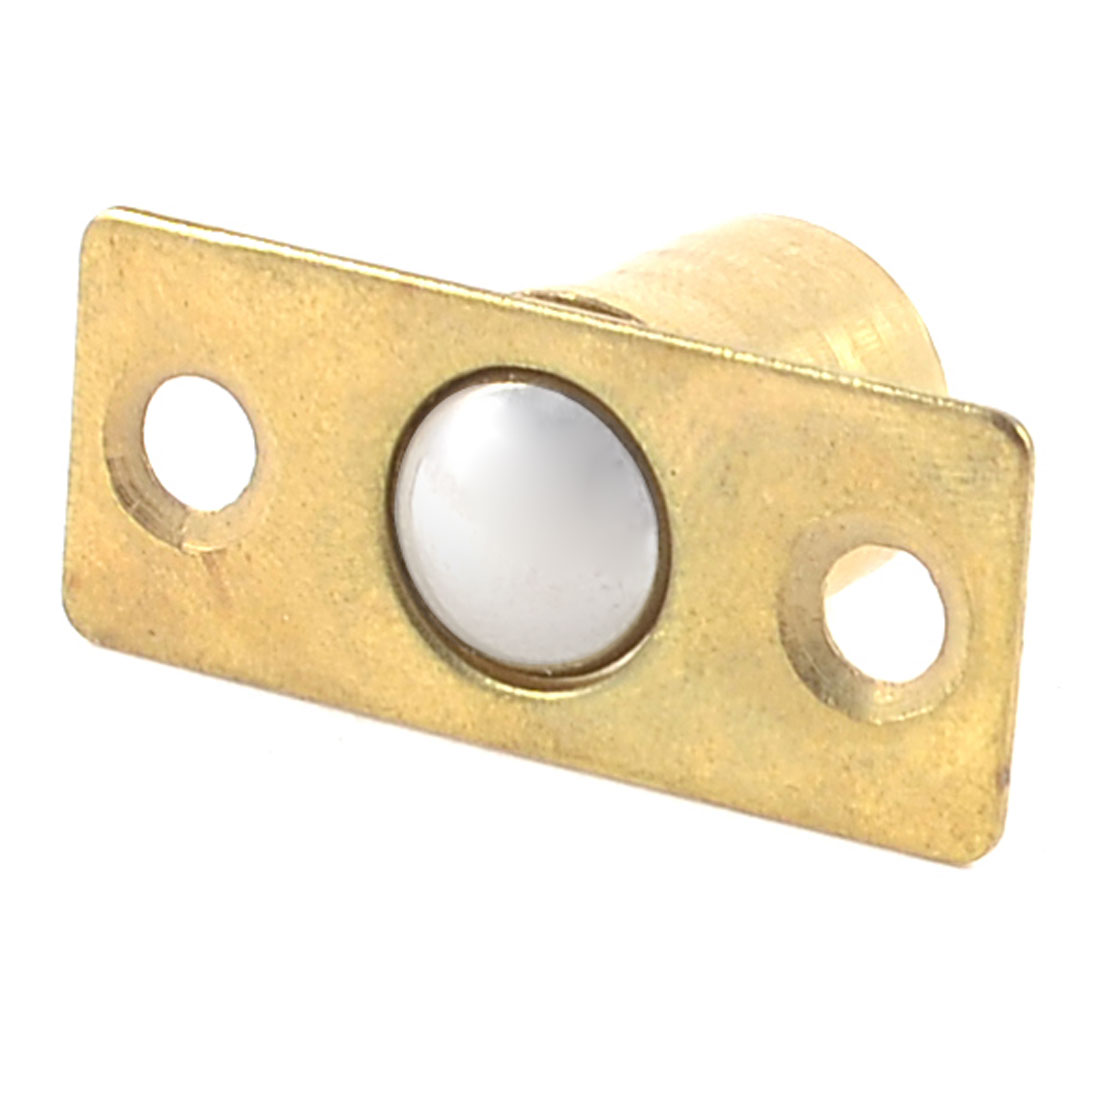 Gold Tone Hardware Closet Door Ball Catch Latch Catcher w Screws